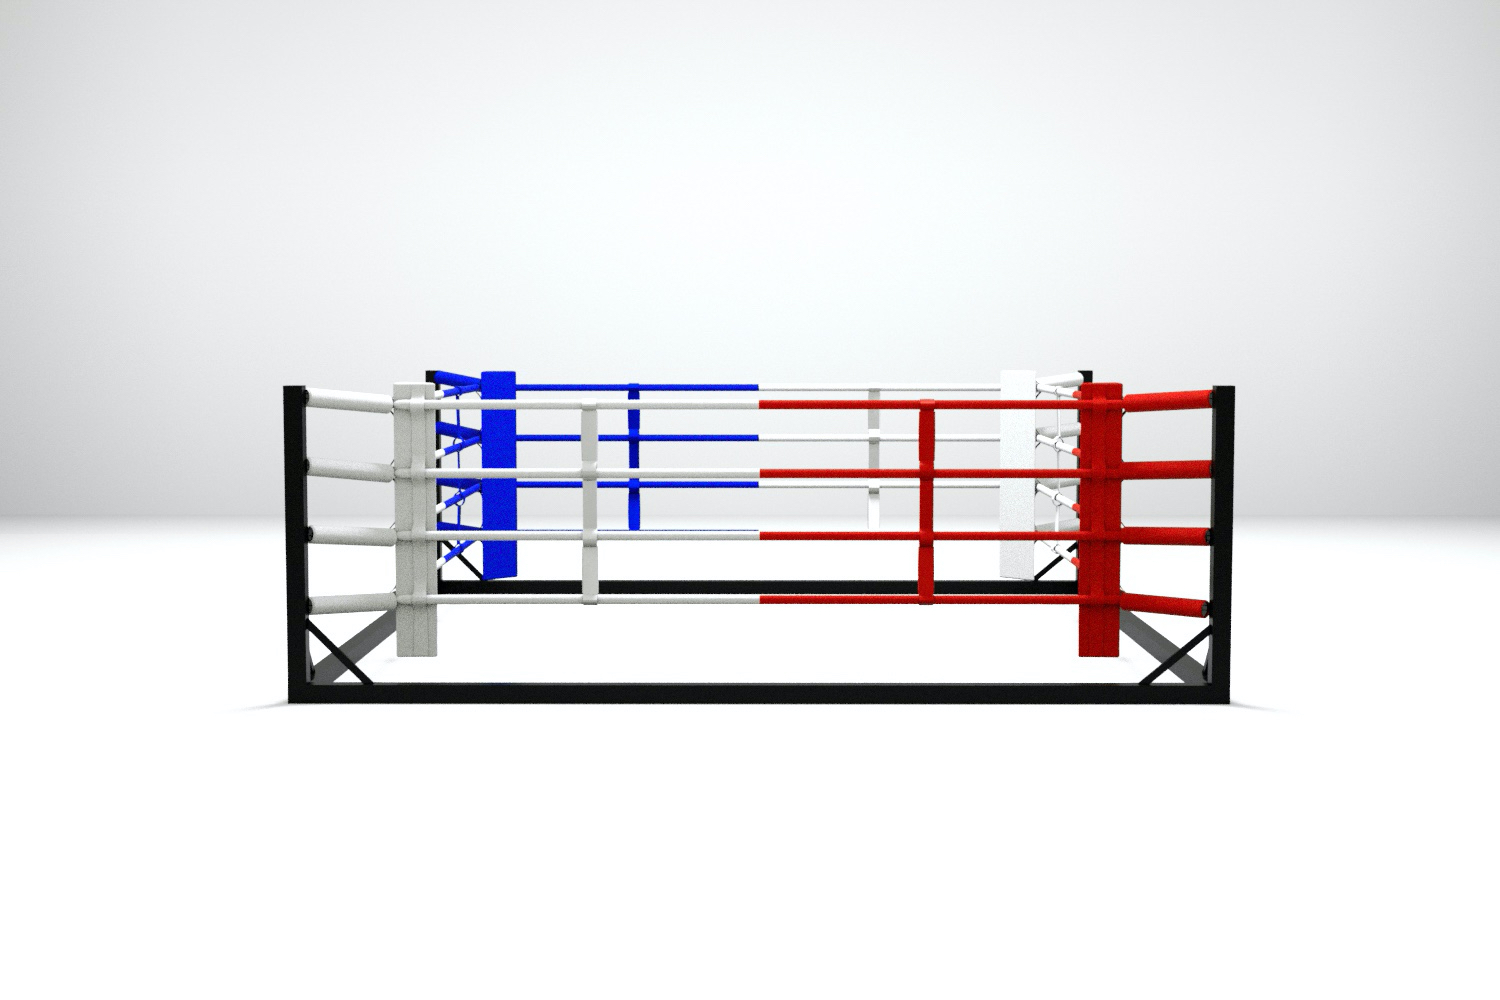 BOXING CAGES